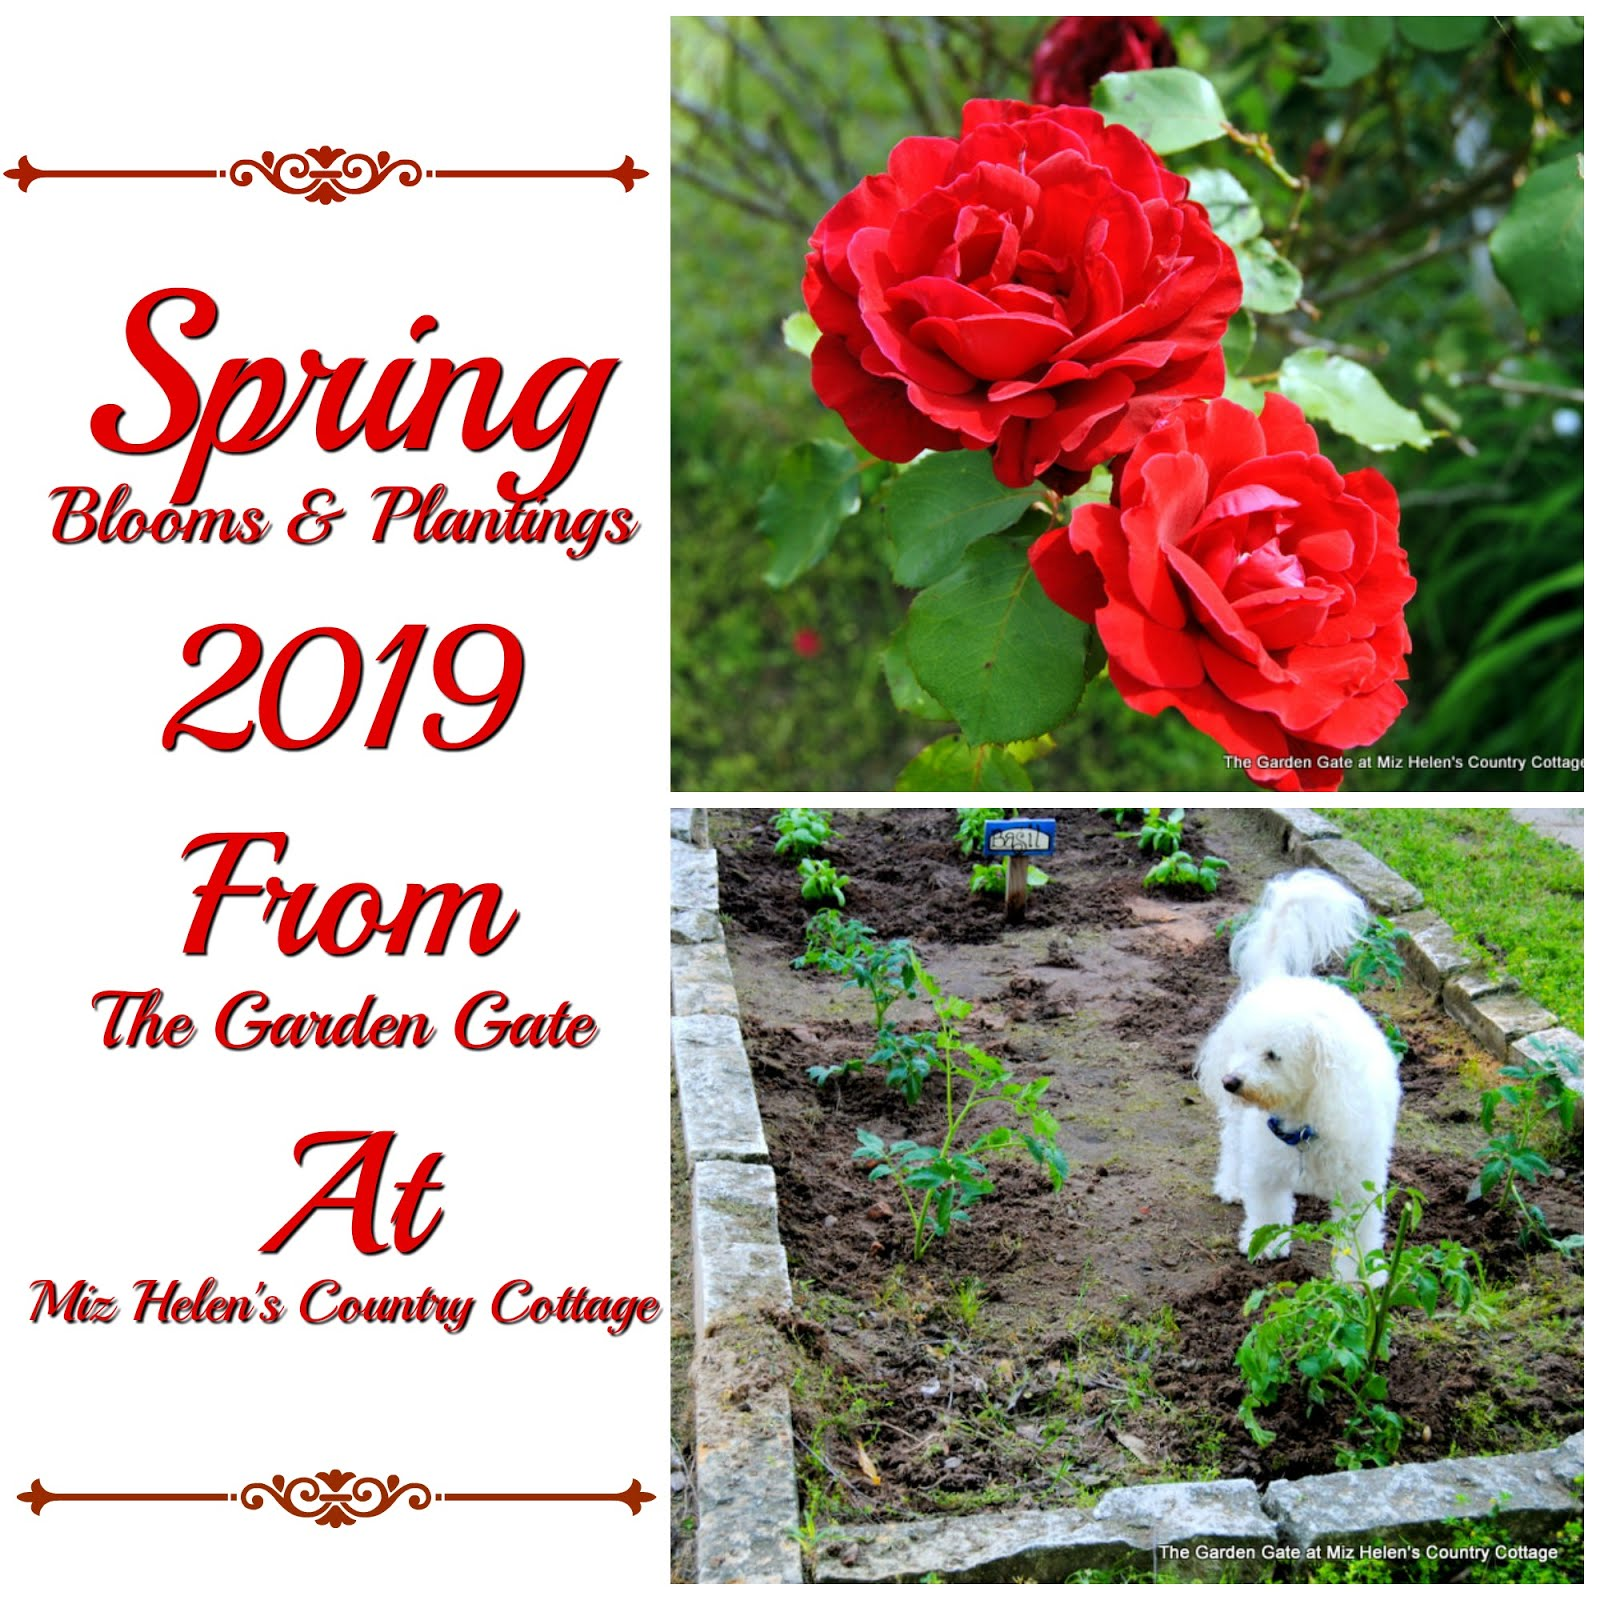 Spring Garden Blooms and Plantings 2019